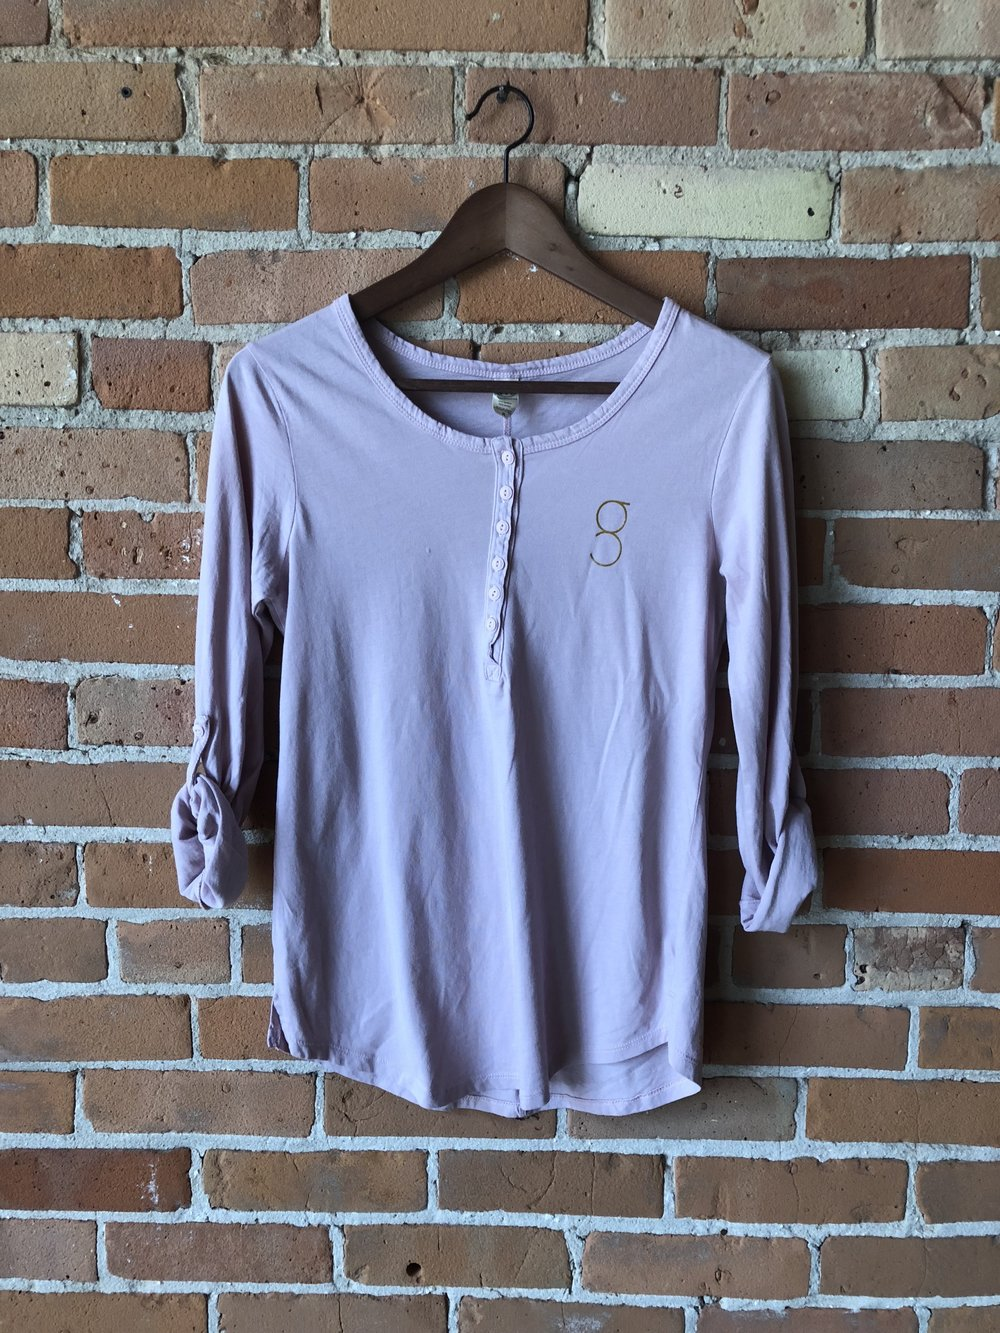 - Pink Grace Yoga Henley Shirt$25